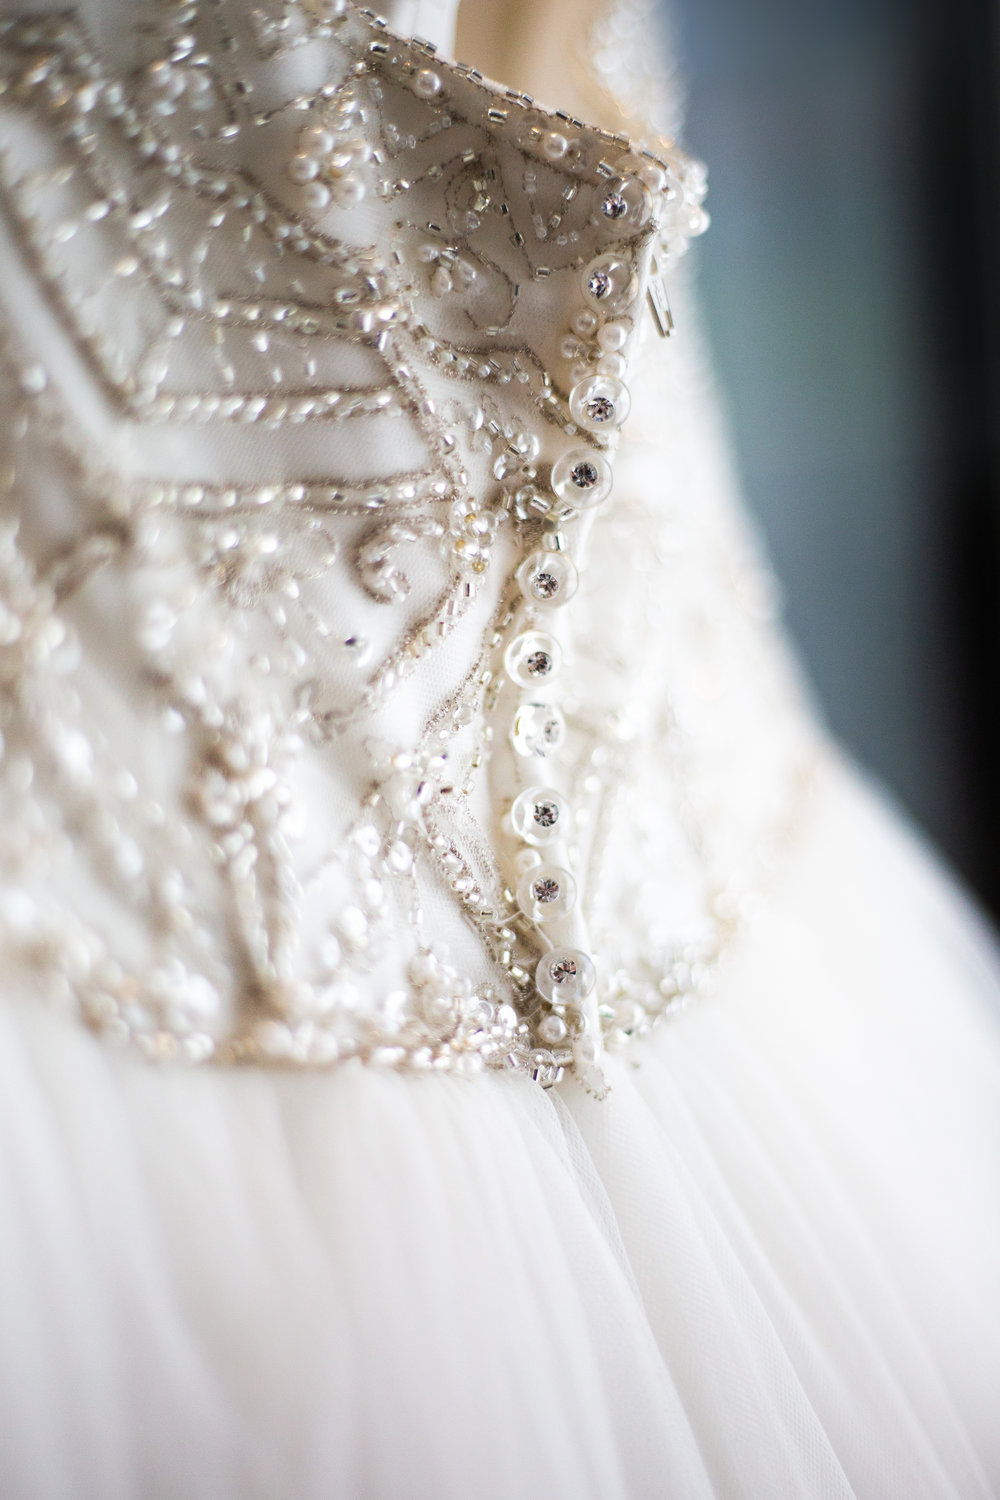 wedding-lea-cooper-photography-willenhall-west-midlands-wolverhampton-dudley-birmingham-uk-marriage-hadley-park-east-telford-dress-detail.jpg